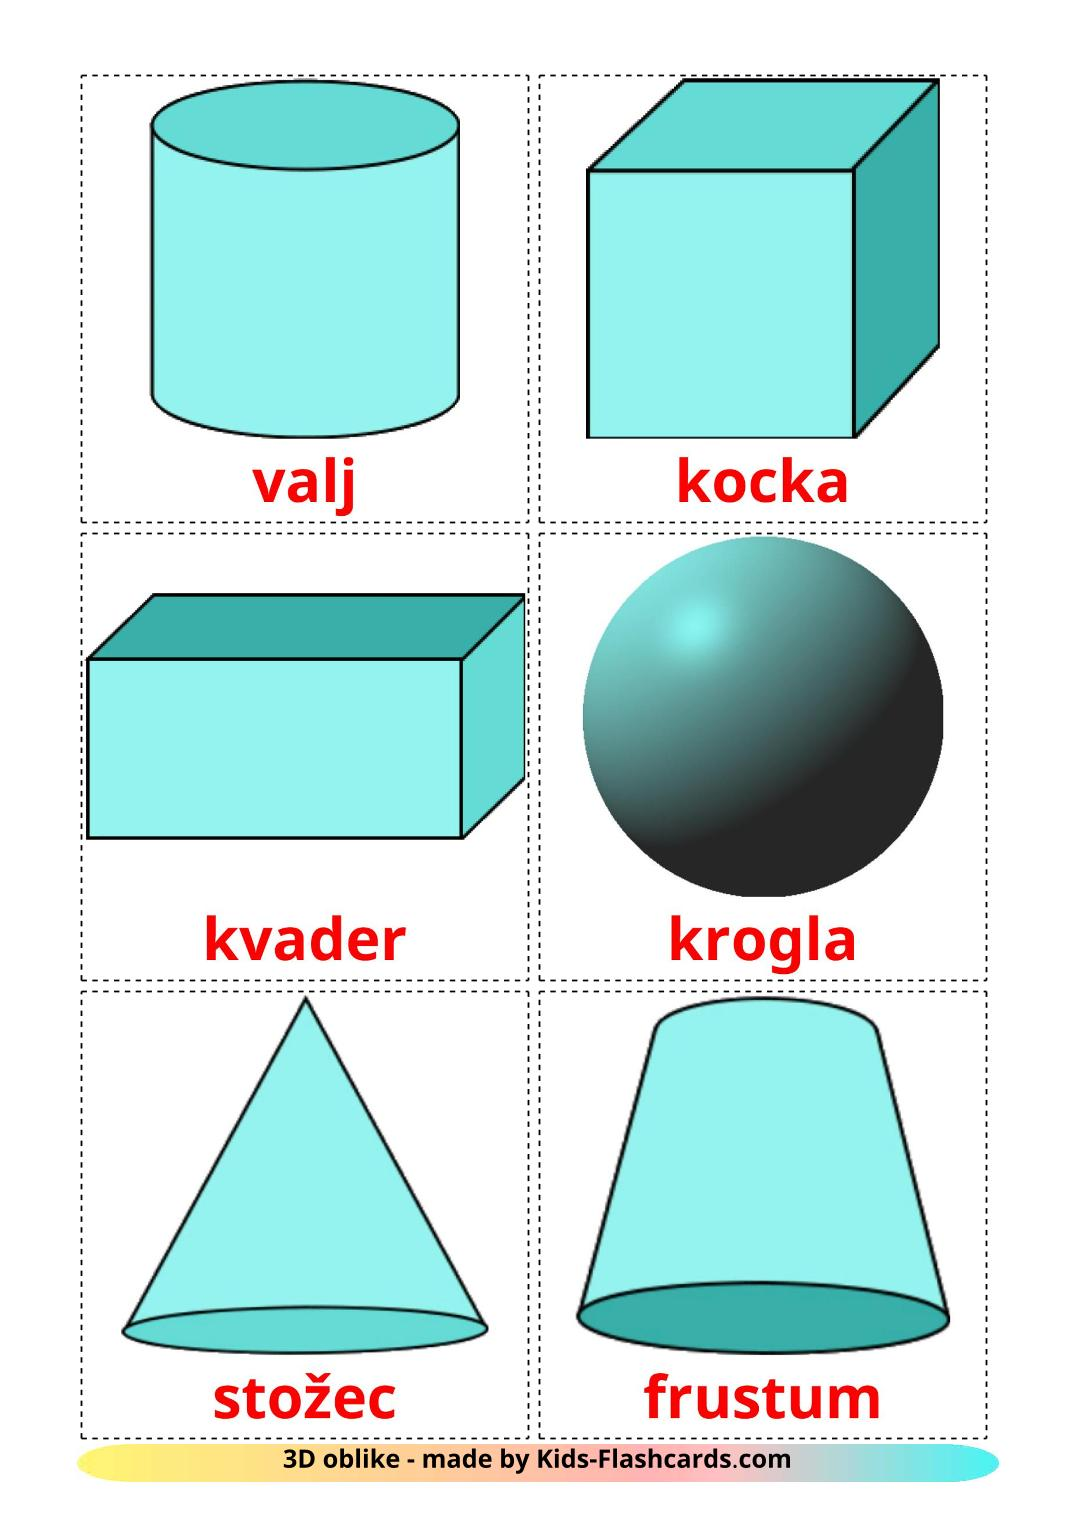 3D Shapes - 17 Free Printable slovenian Flashcards